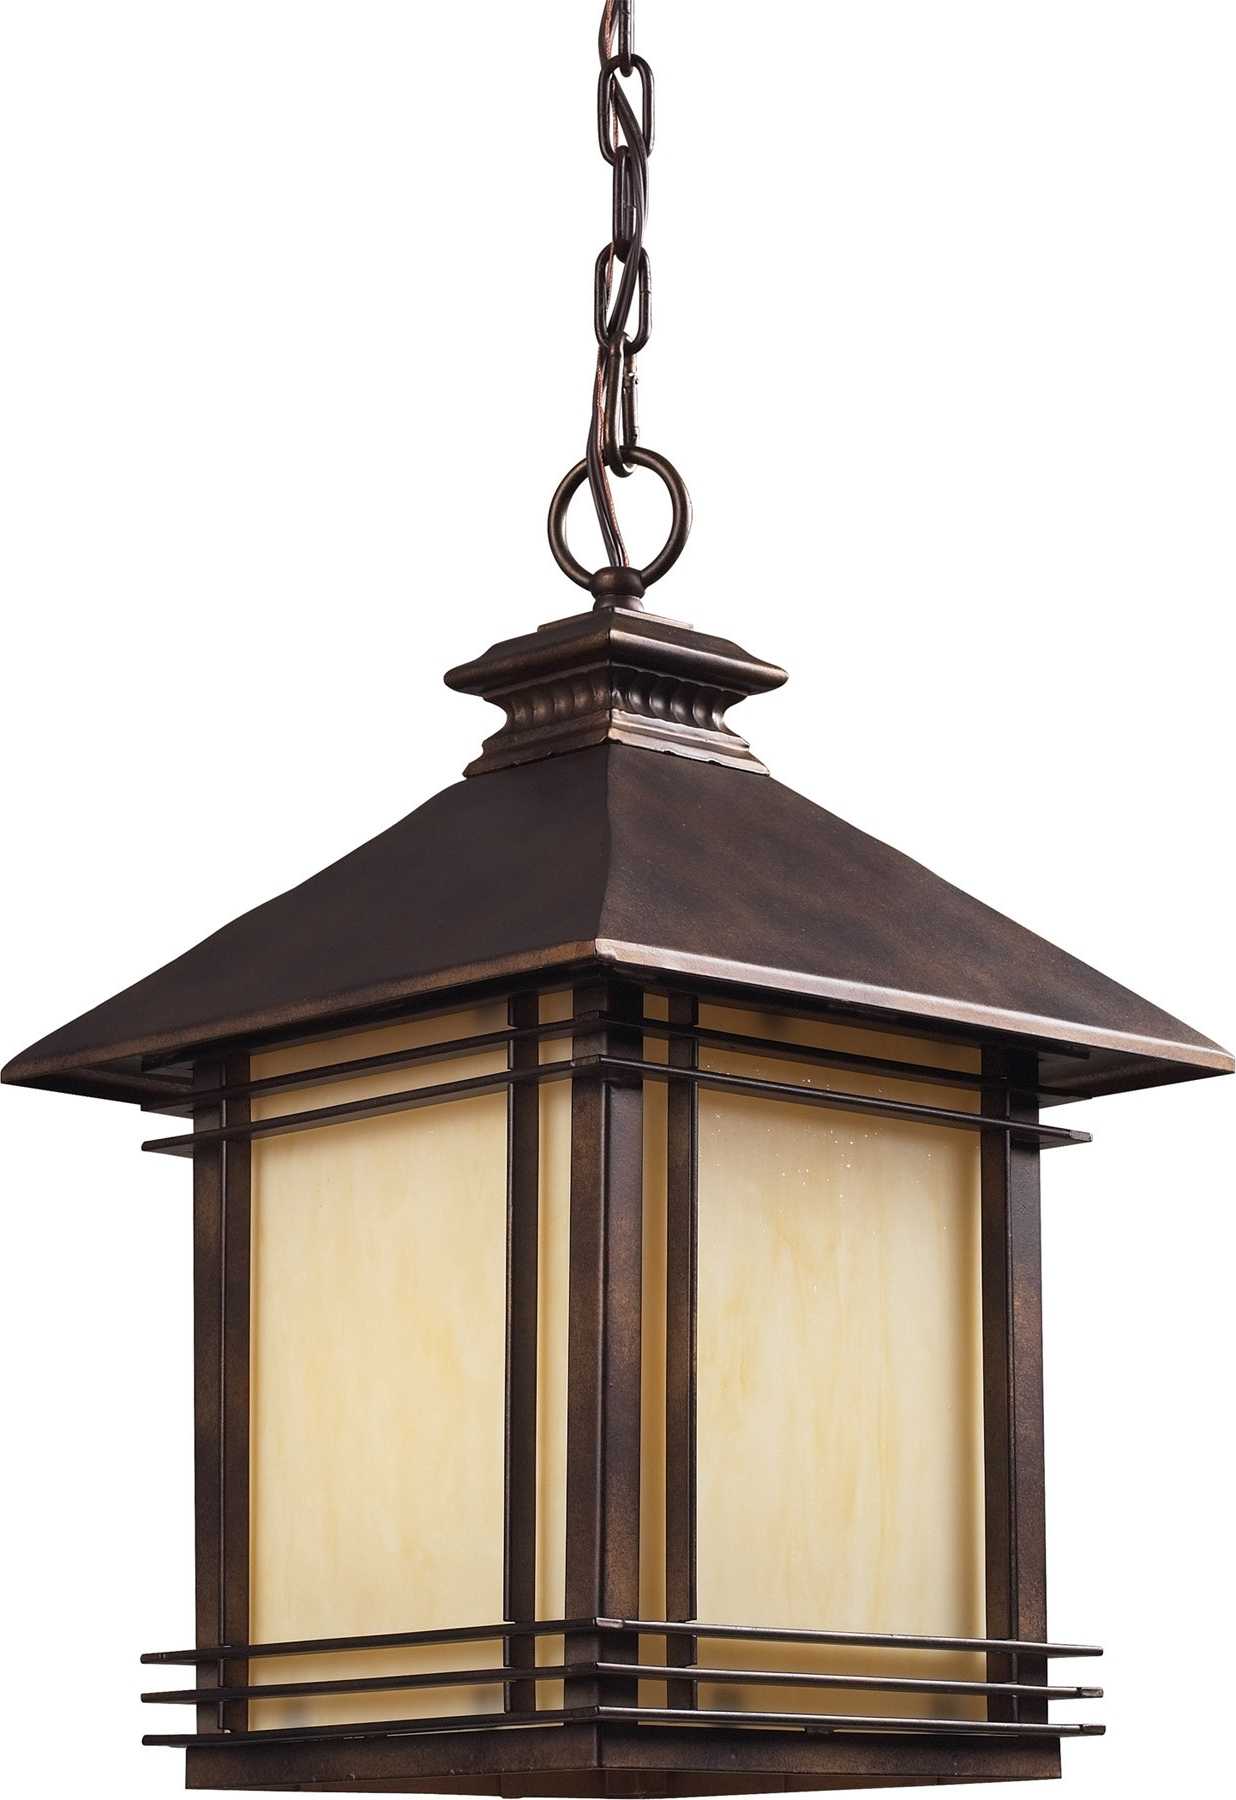 Solar Patio Lanterns Best Of Battery Operated Outdoor Hanging Lights Pertaining To Recent Outdoor Battery Lanterns For Patio (View 20 of 20)